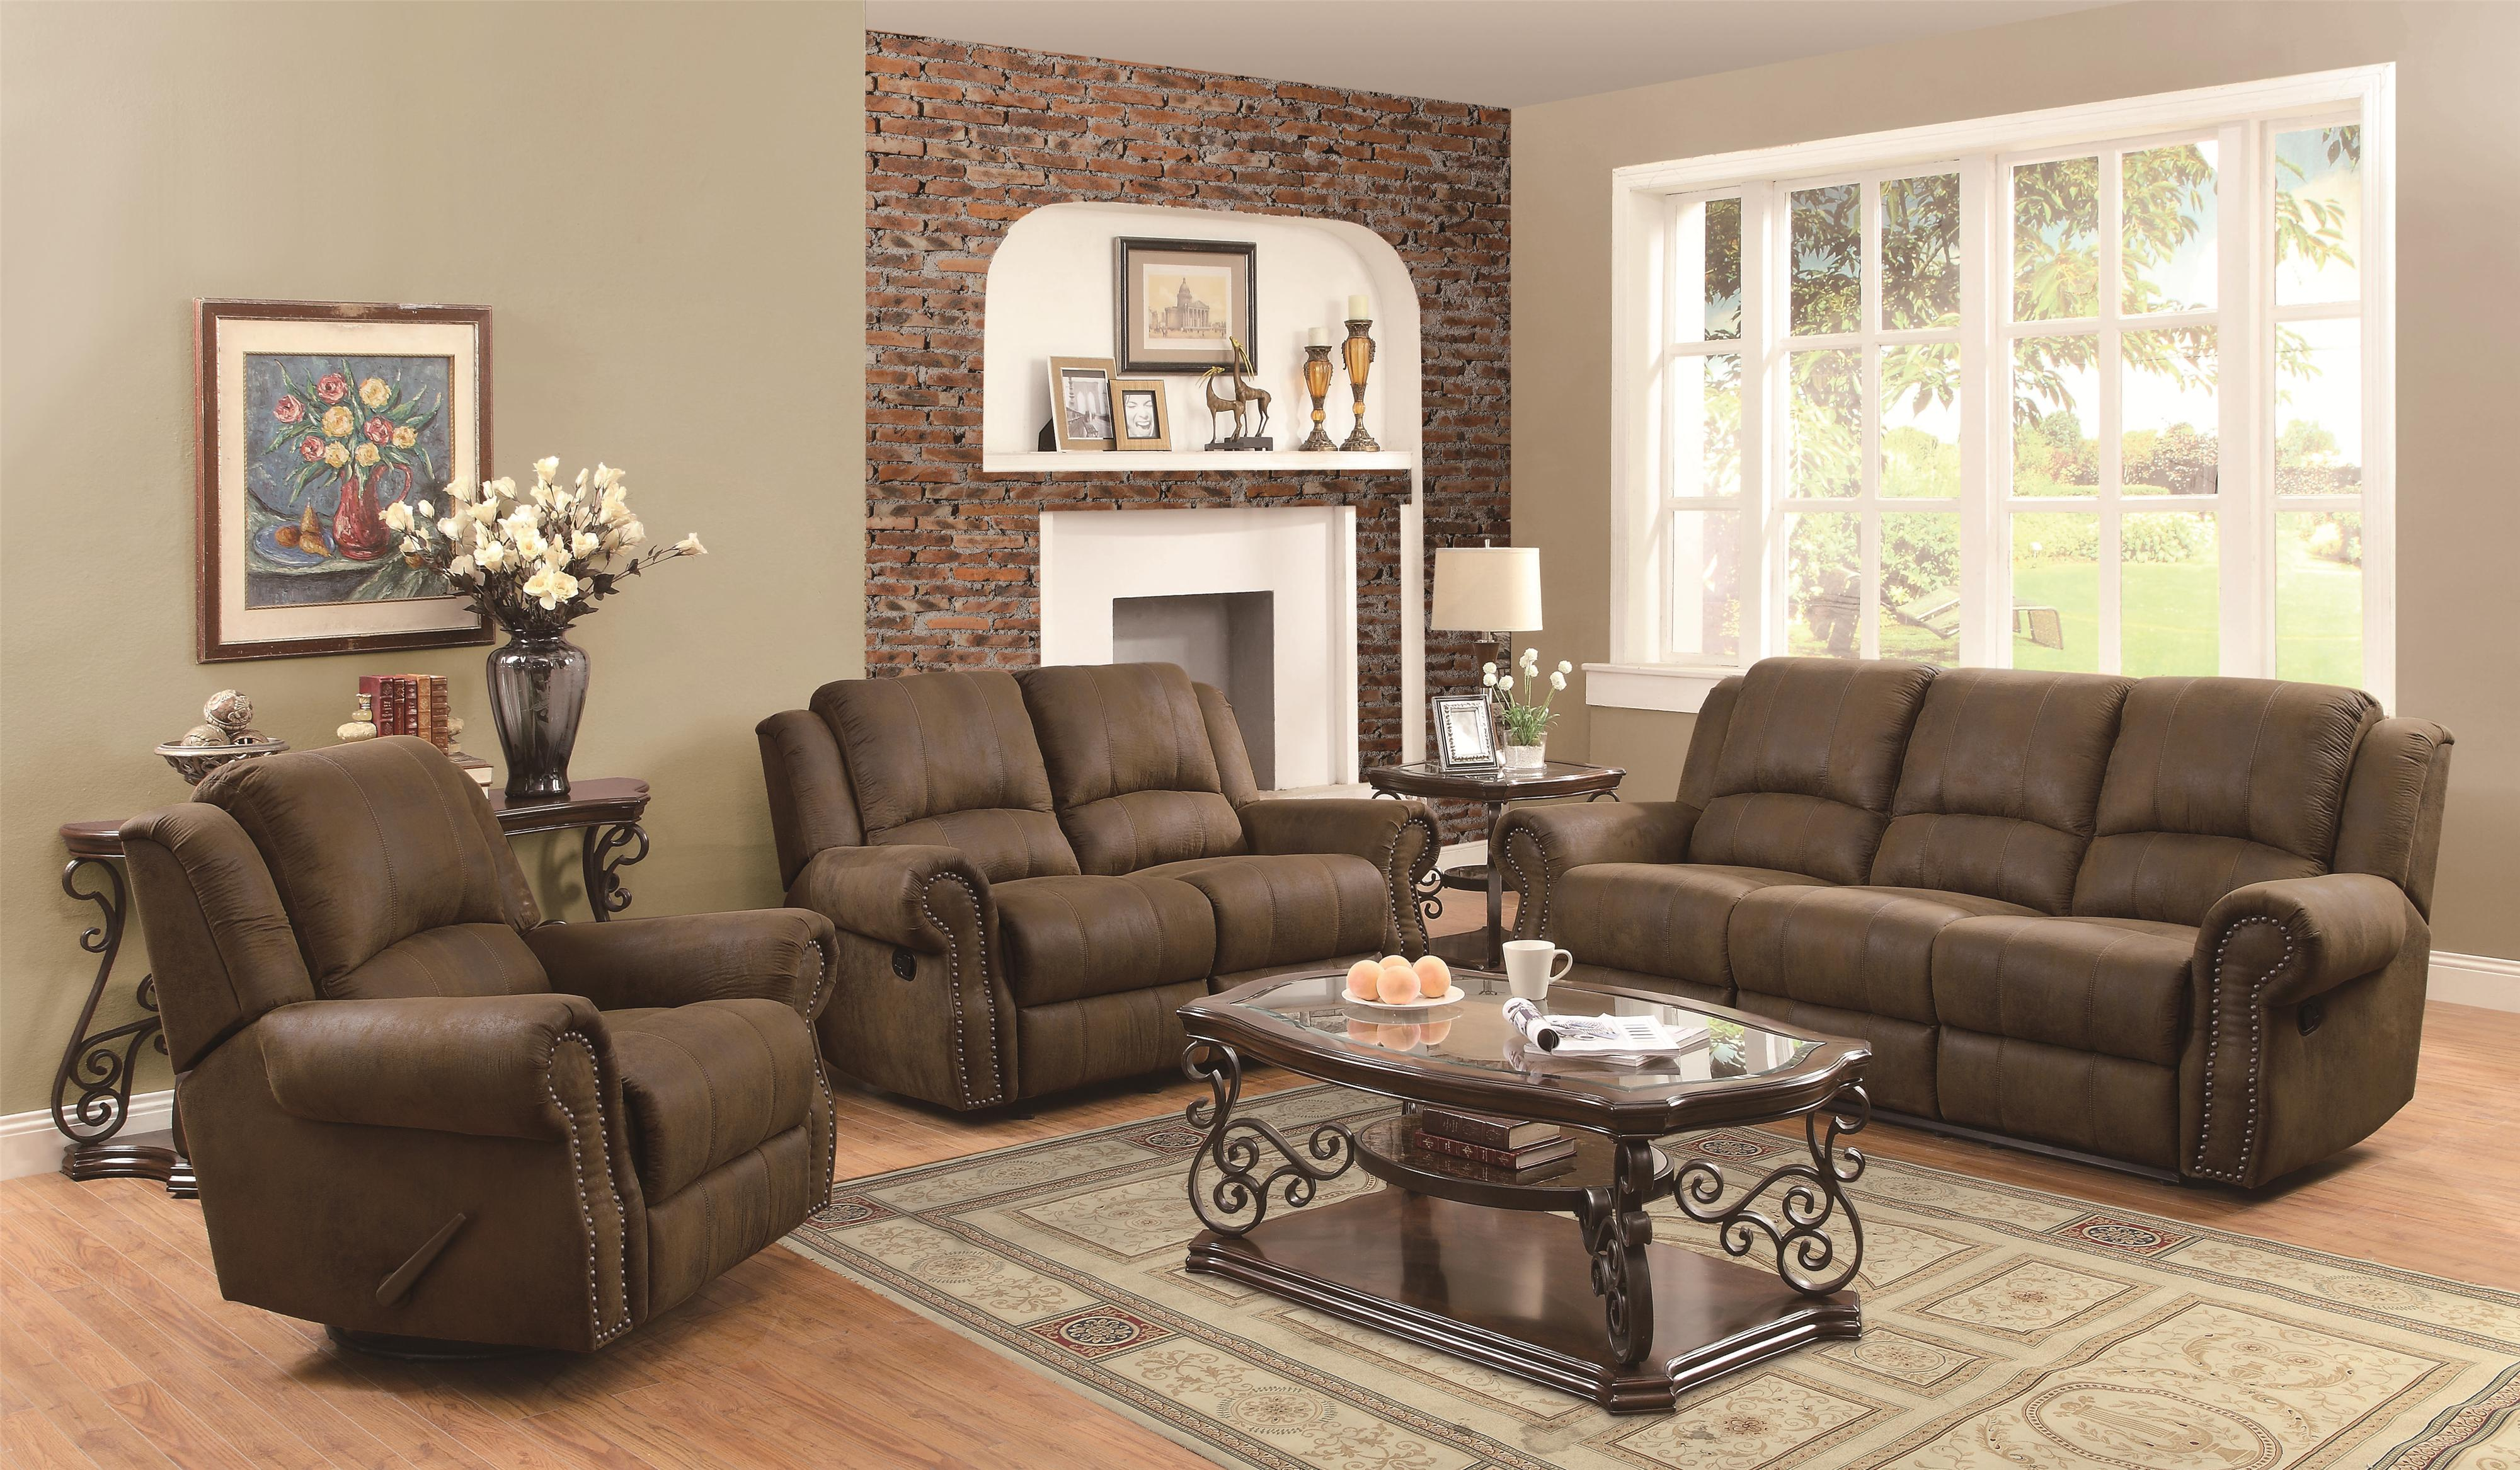 Sir Rawlinson Reclining Living Room Group by Coaster at Northeast Factory Direct